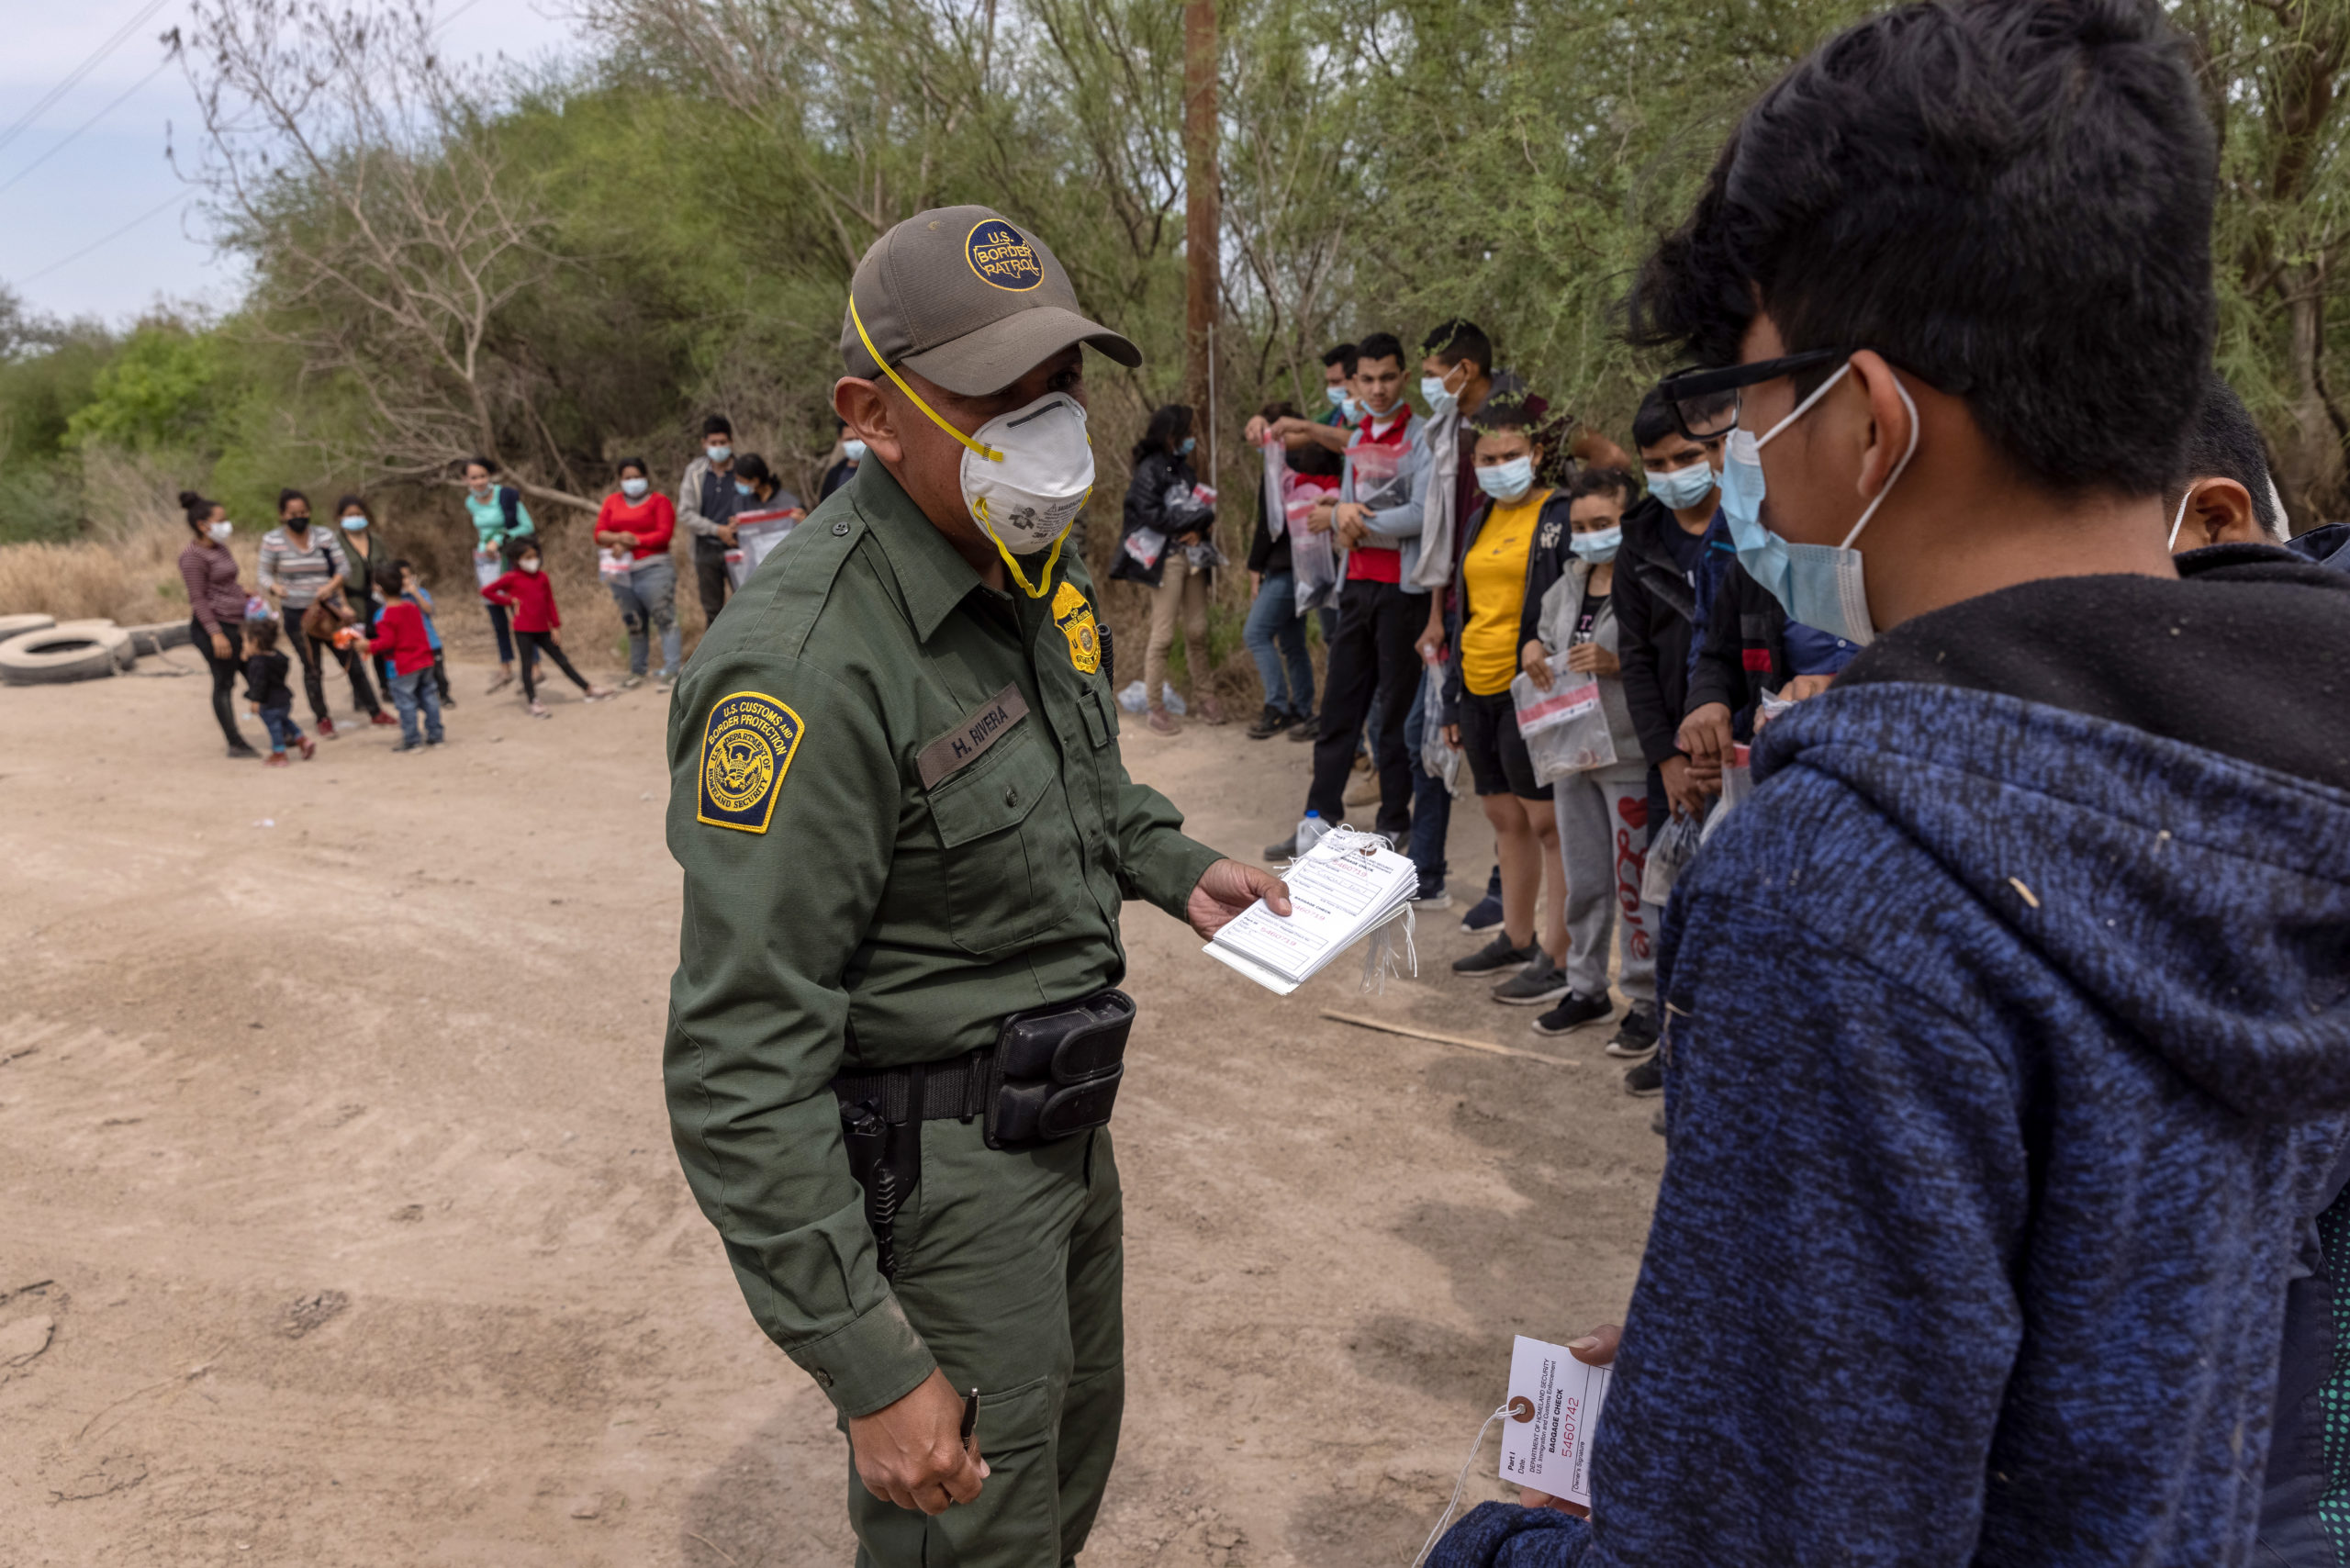 A U.S. Border Patrol agent questions a group of asylum seekers at the Texas-Mexico border on March 25. (John Moore/Getty Images)